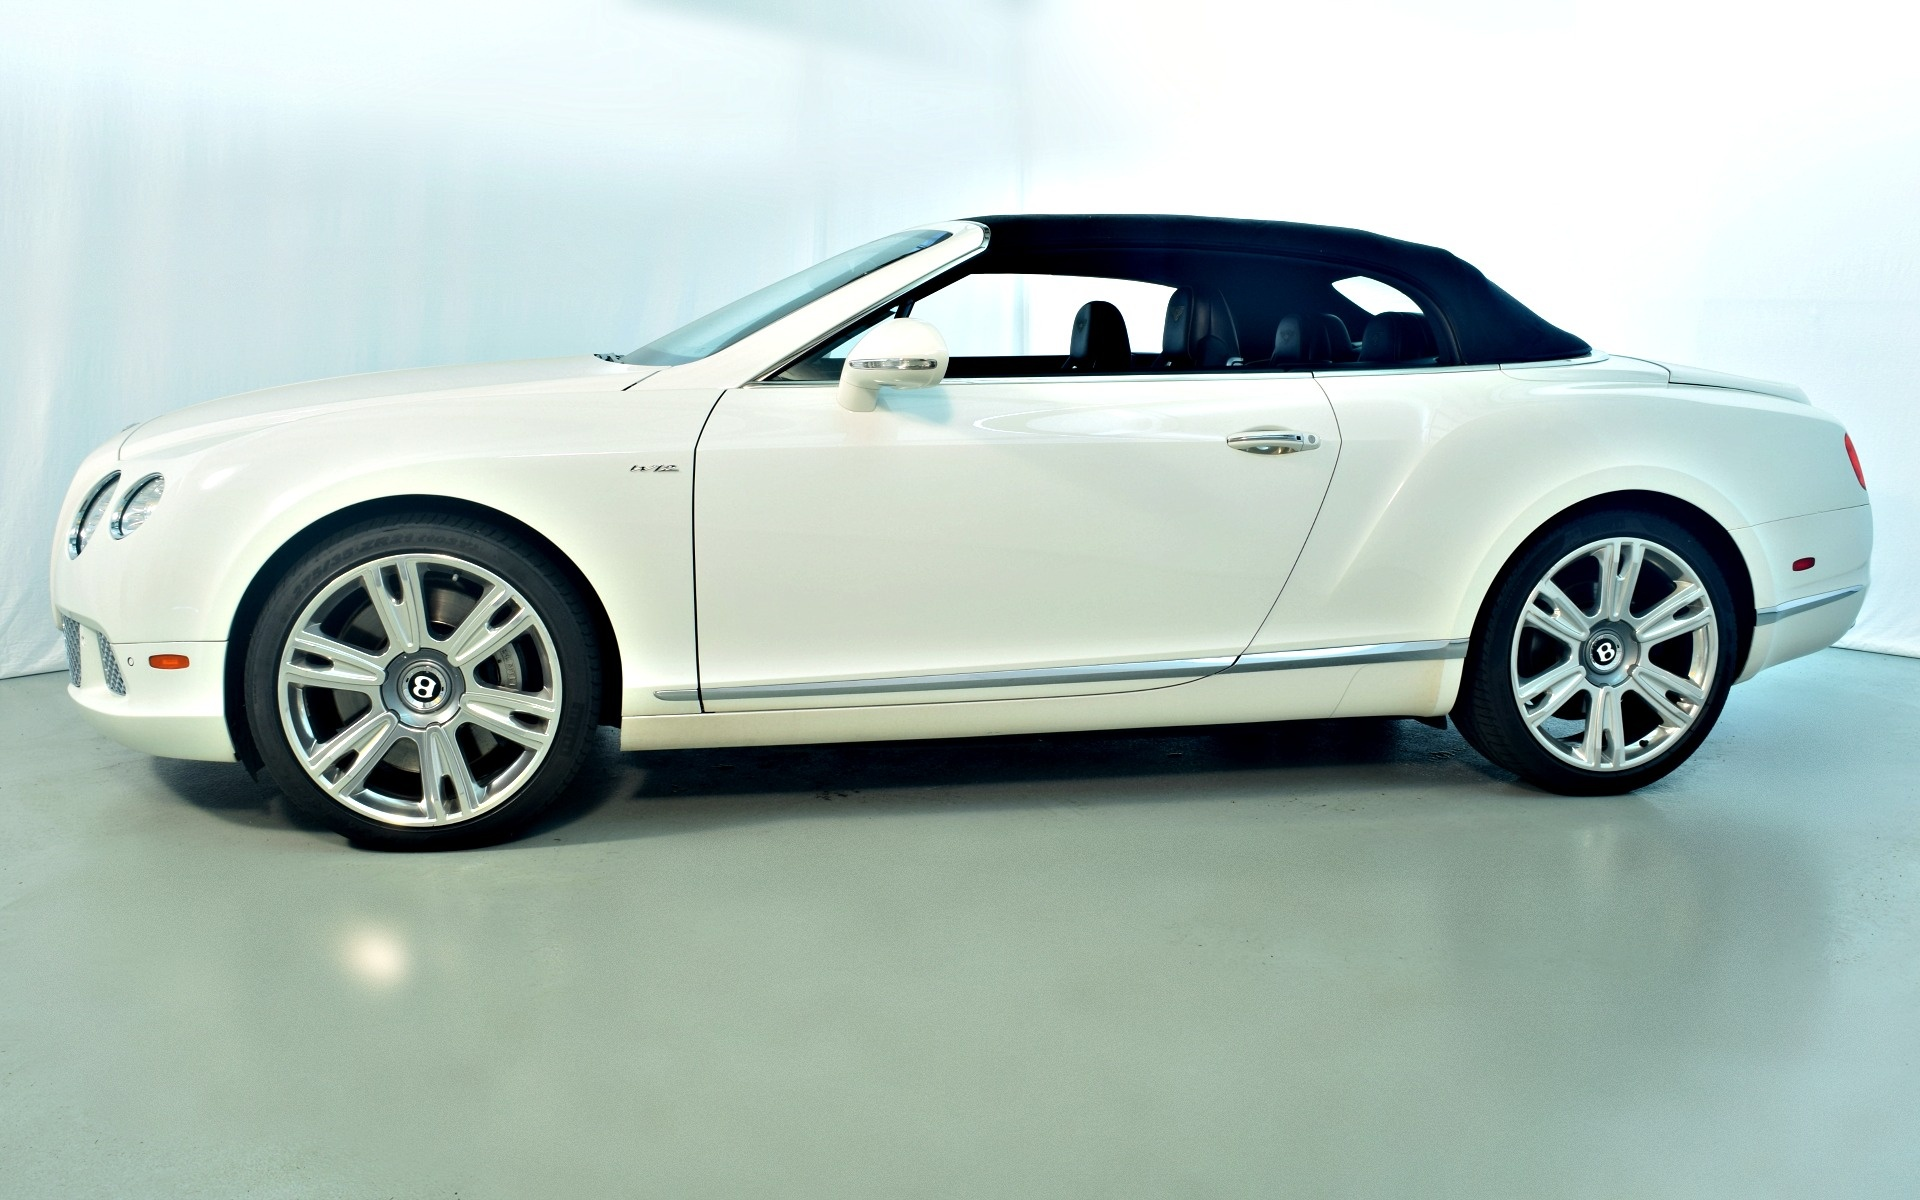 2013 Bentley Continental GTC For Sale $141,900